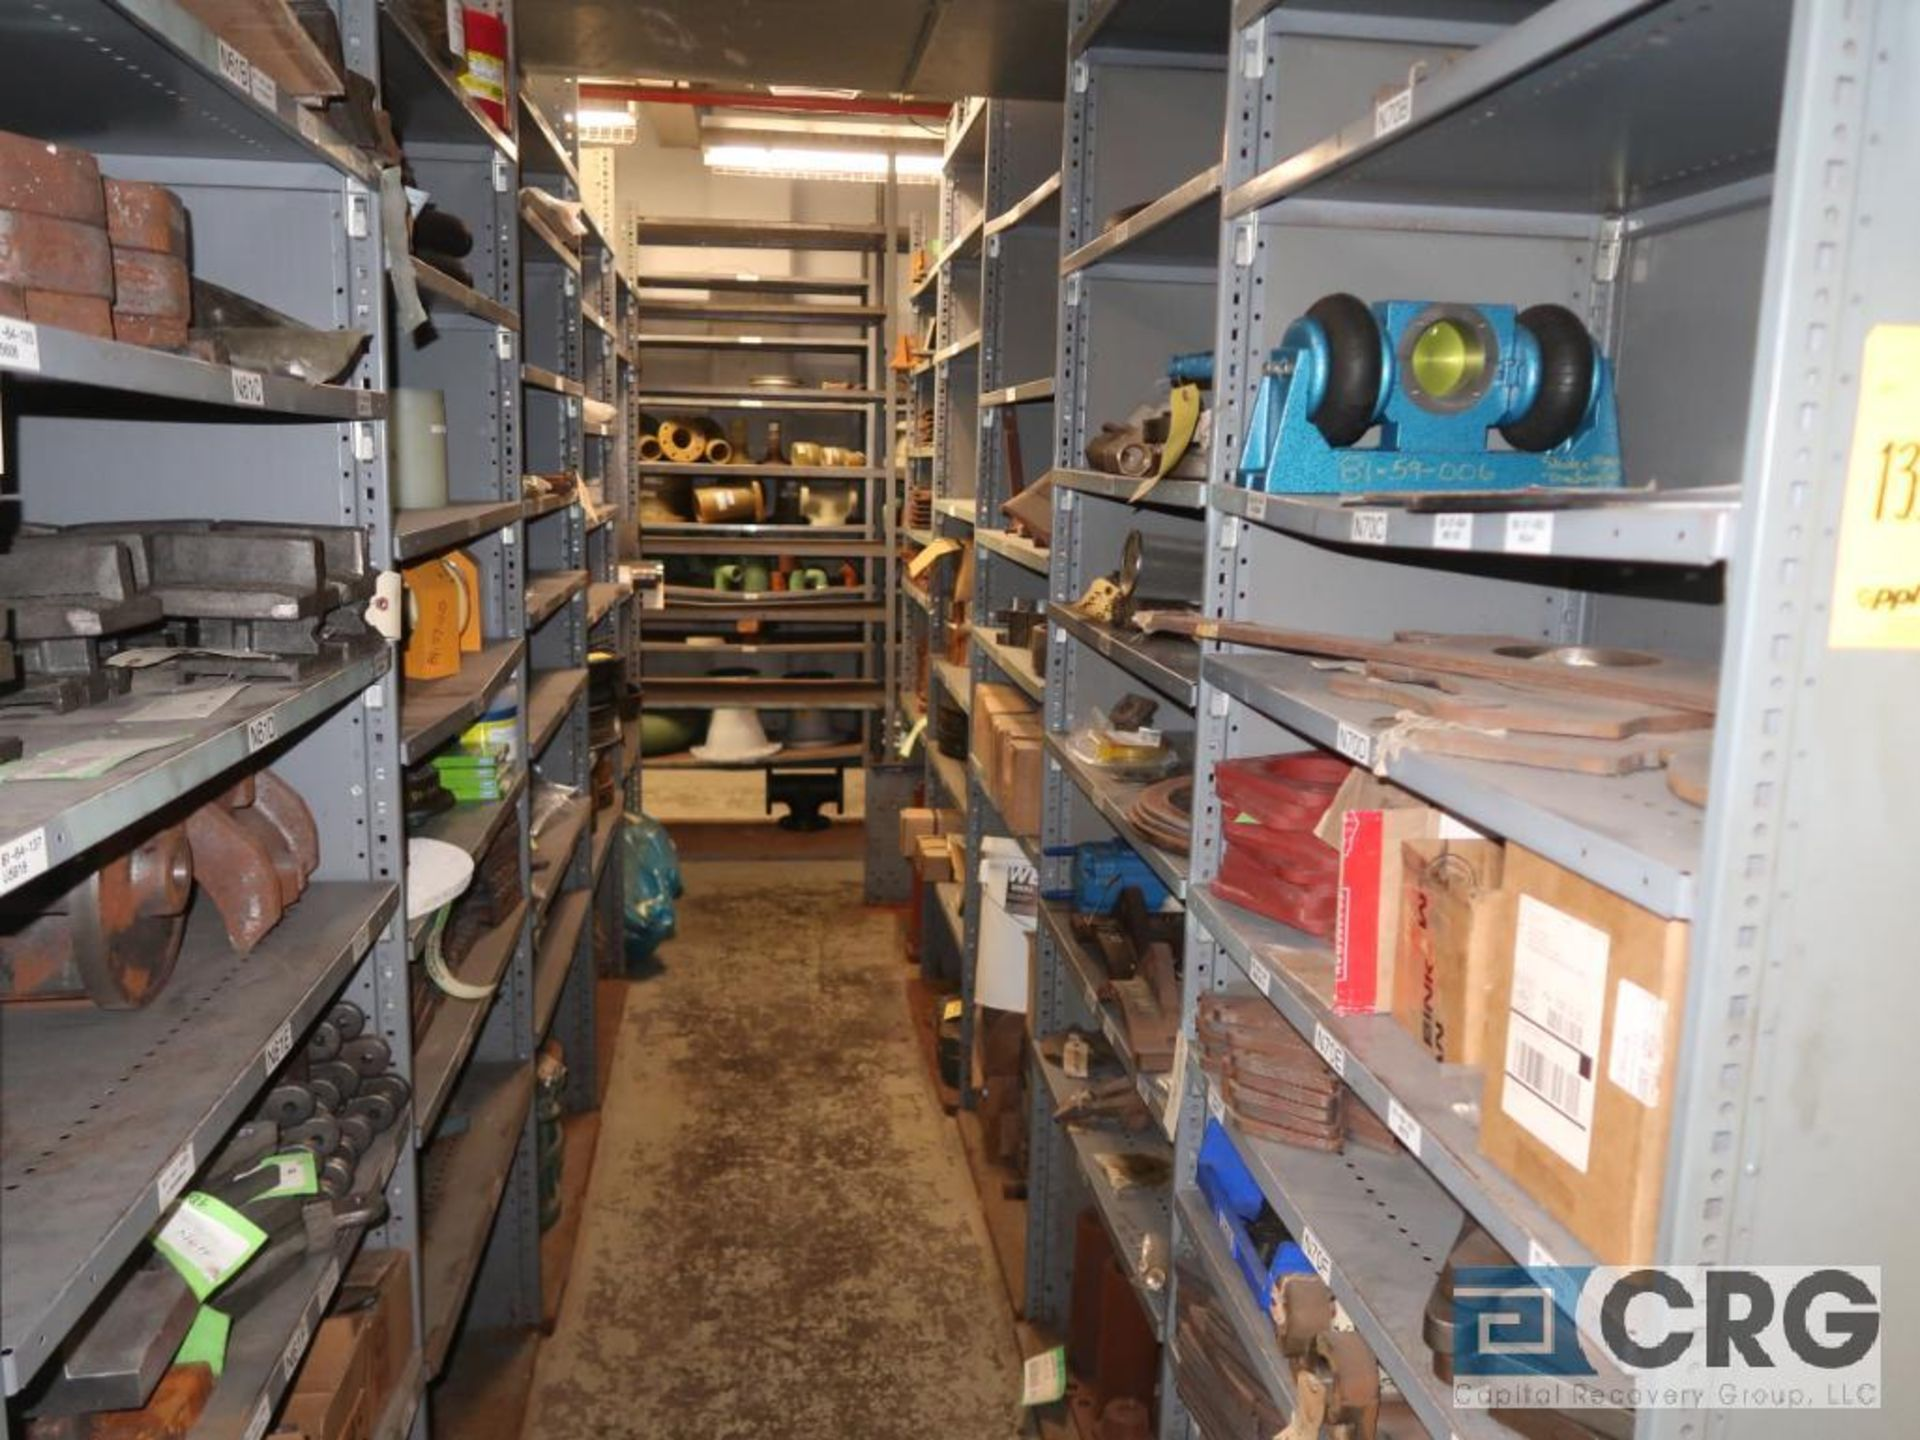 Lot of (35) sections with assorted parts including gaskets, fittings, shaft pins, gears, and - Image 12 of 17